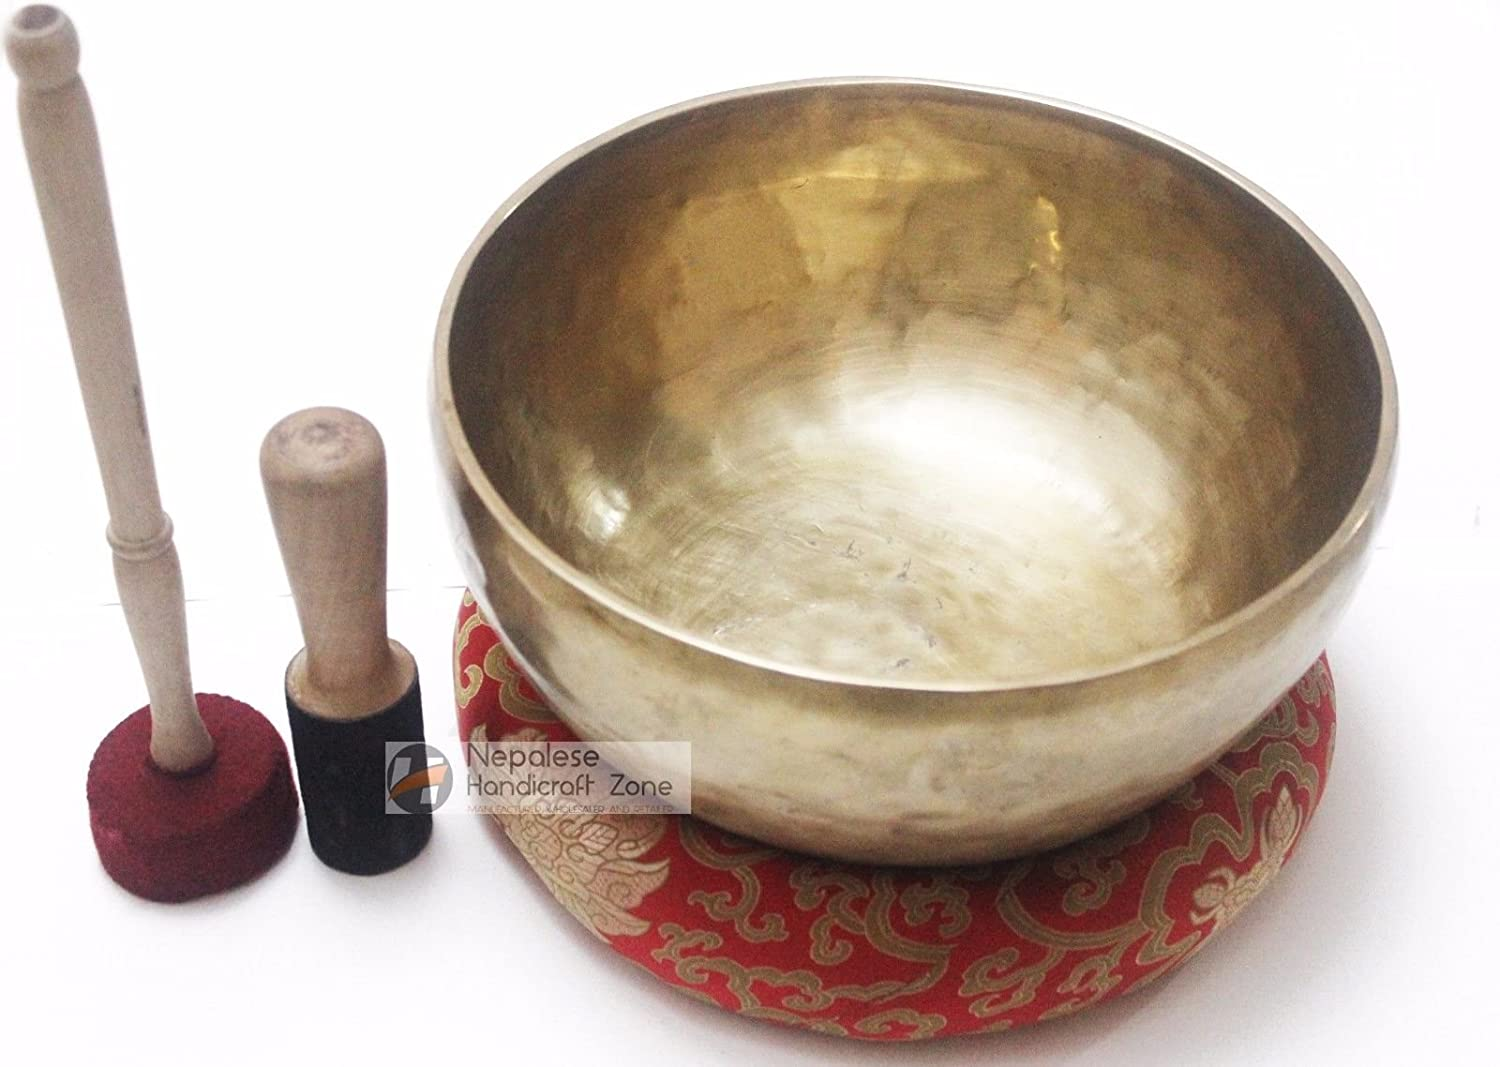 9 Singing Bowl - Tibetan Plain Singing Bowl - Meditation Bowl-Handmade Bowl Set by Nepalese Handicraft Zone NHZ